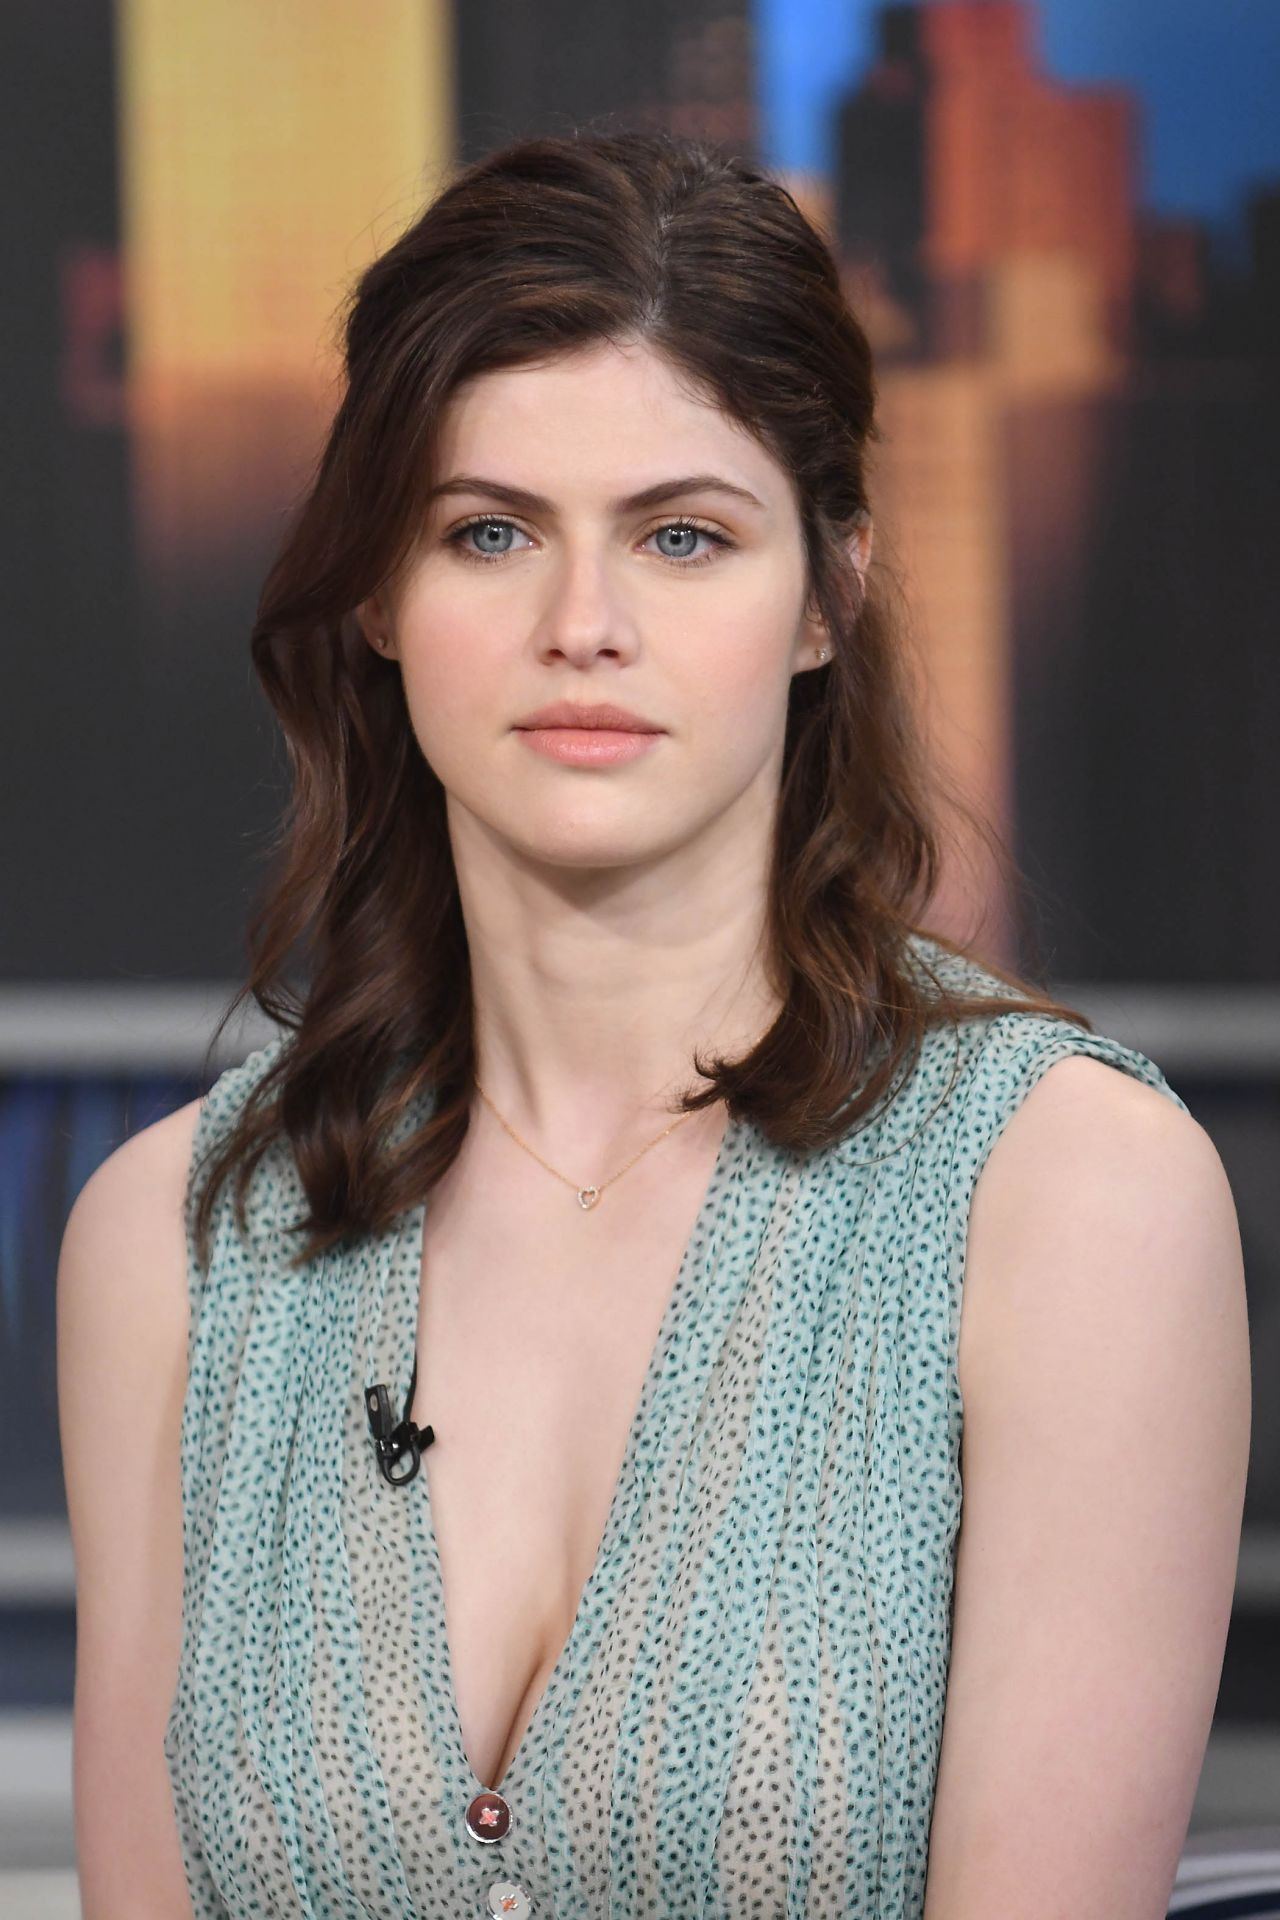 Pictures Alexandra Daddario nudes (72 photos), Pussy, Hot, Boobs, butt 2015